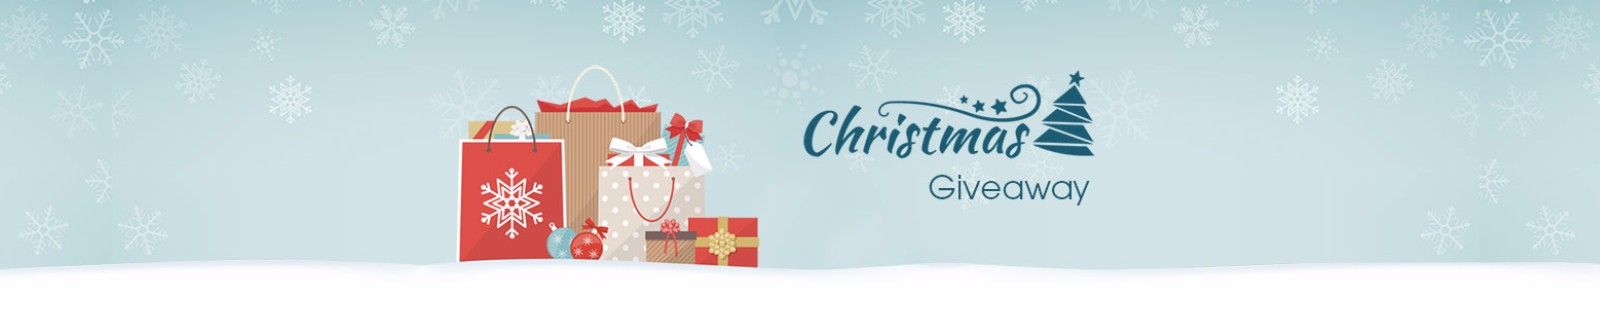 Greenredeem Christmas Giveaway